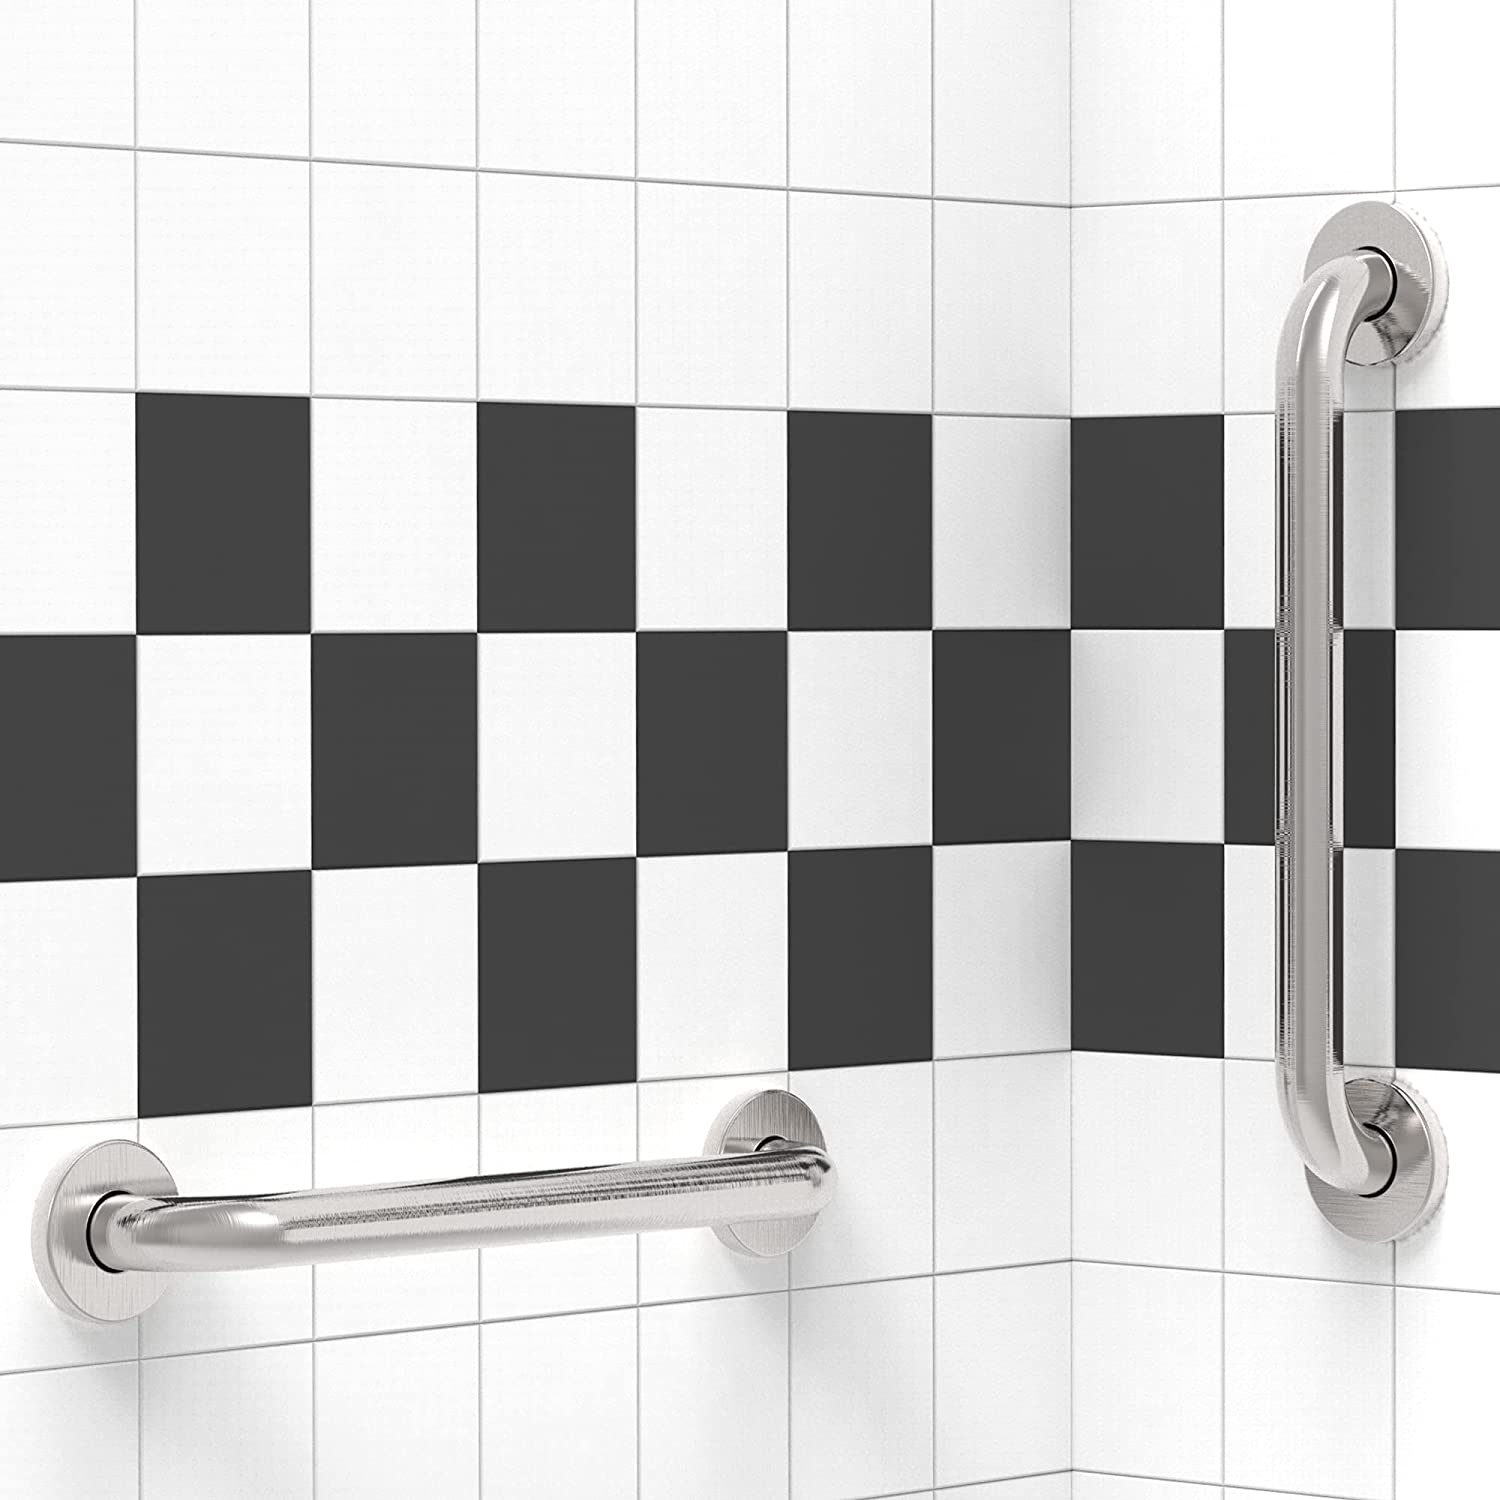 AmeriLuck 16 inches Stainless Steel Bath Ranking TOP18 Ranking TOP1 Pack Safety Grab 2 Bar